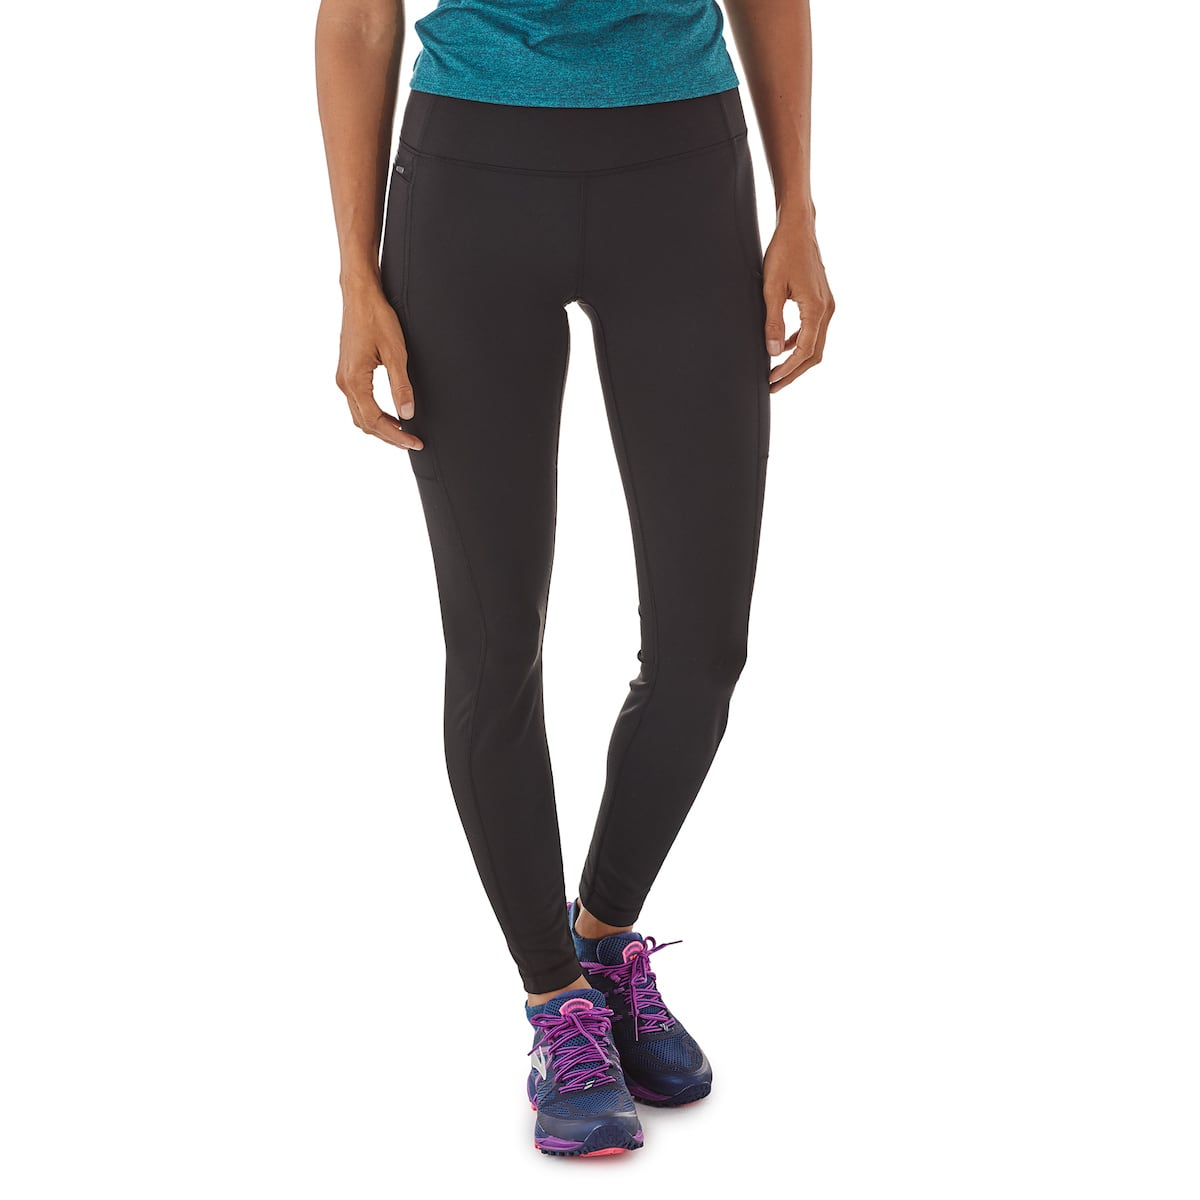 Patagonia-Pack Out Tights - Women's